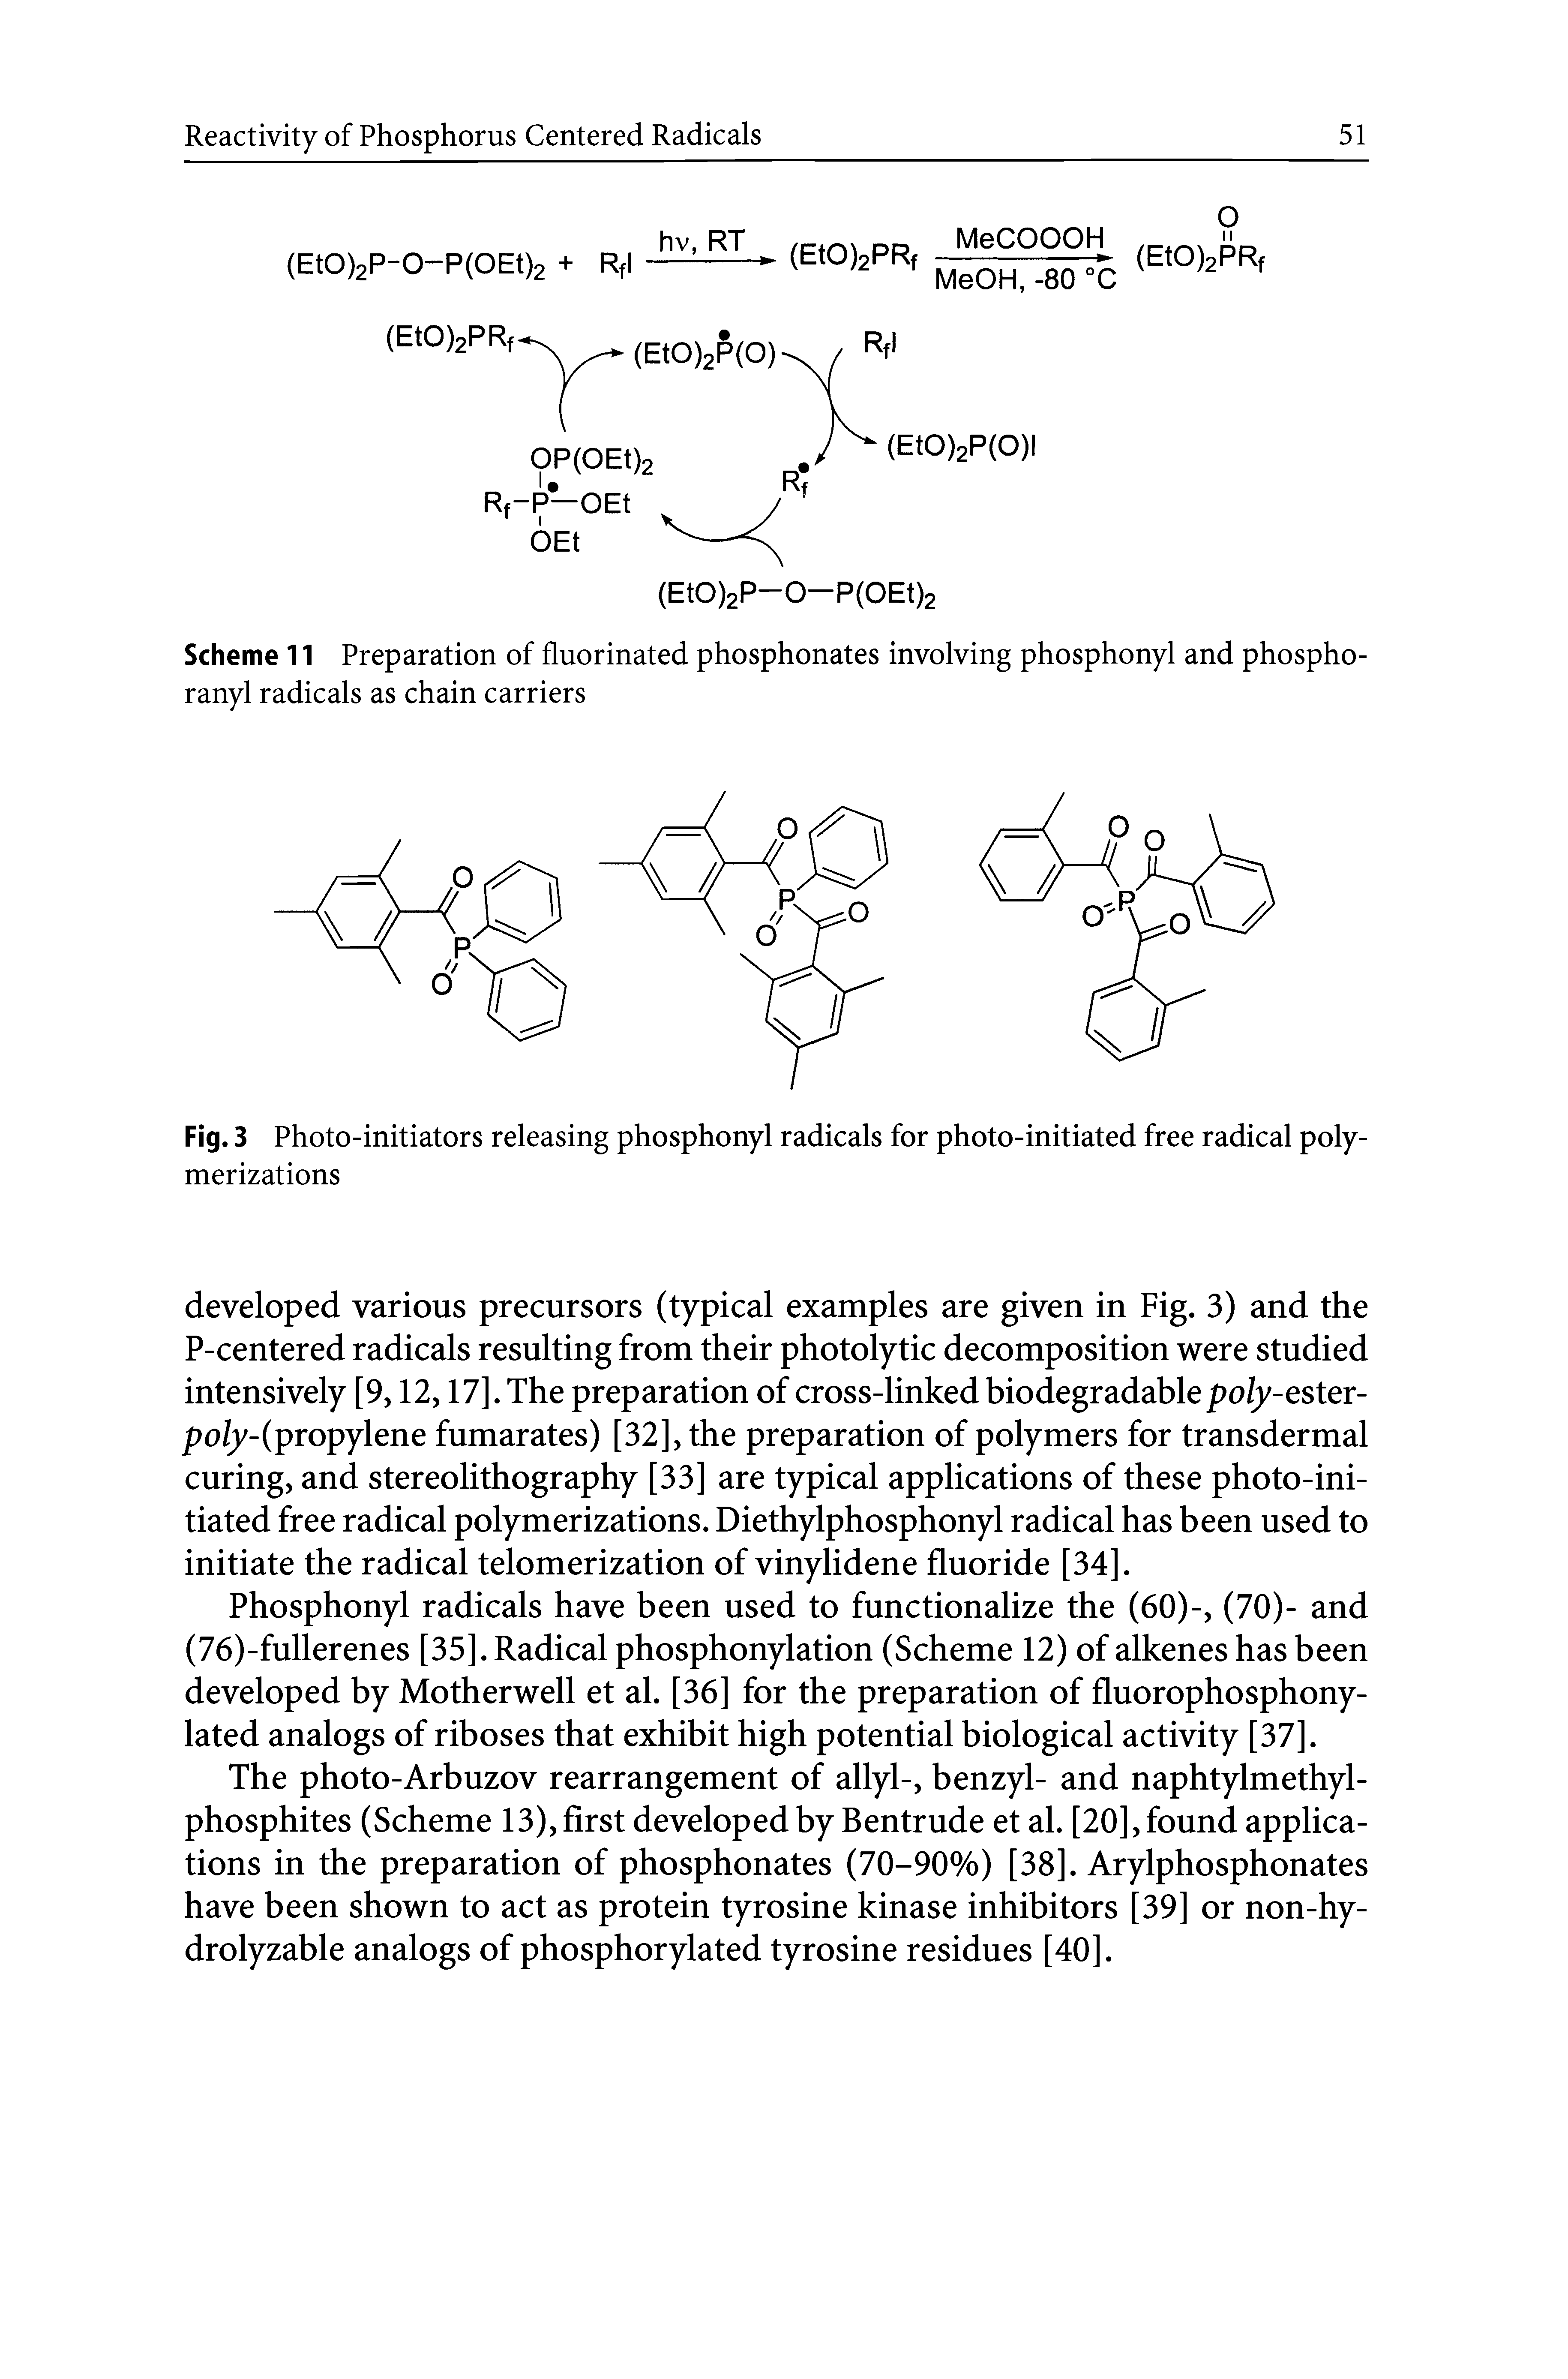 "Scheme 11 Preparation of <a href=""/info/phosphonates_fluorinated"">fluorinated phosphonates</a> involving phosphonyl and phospho-ranyl radicals as chain carriers"